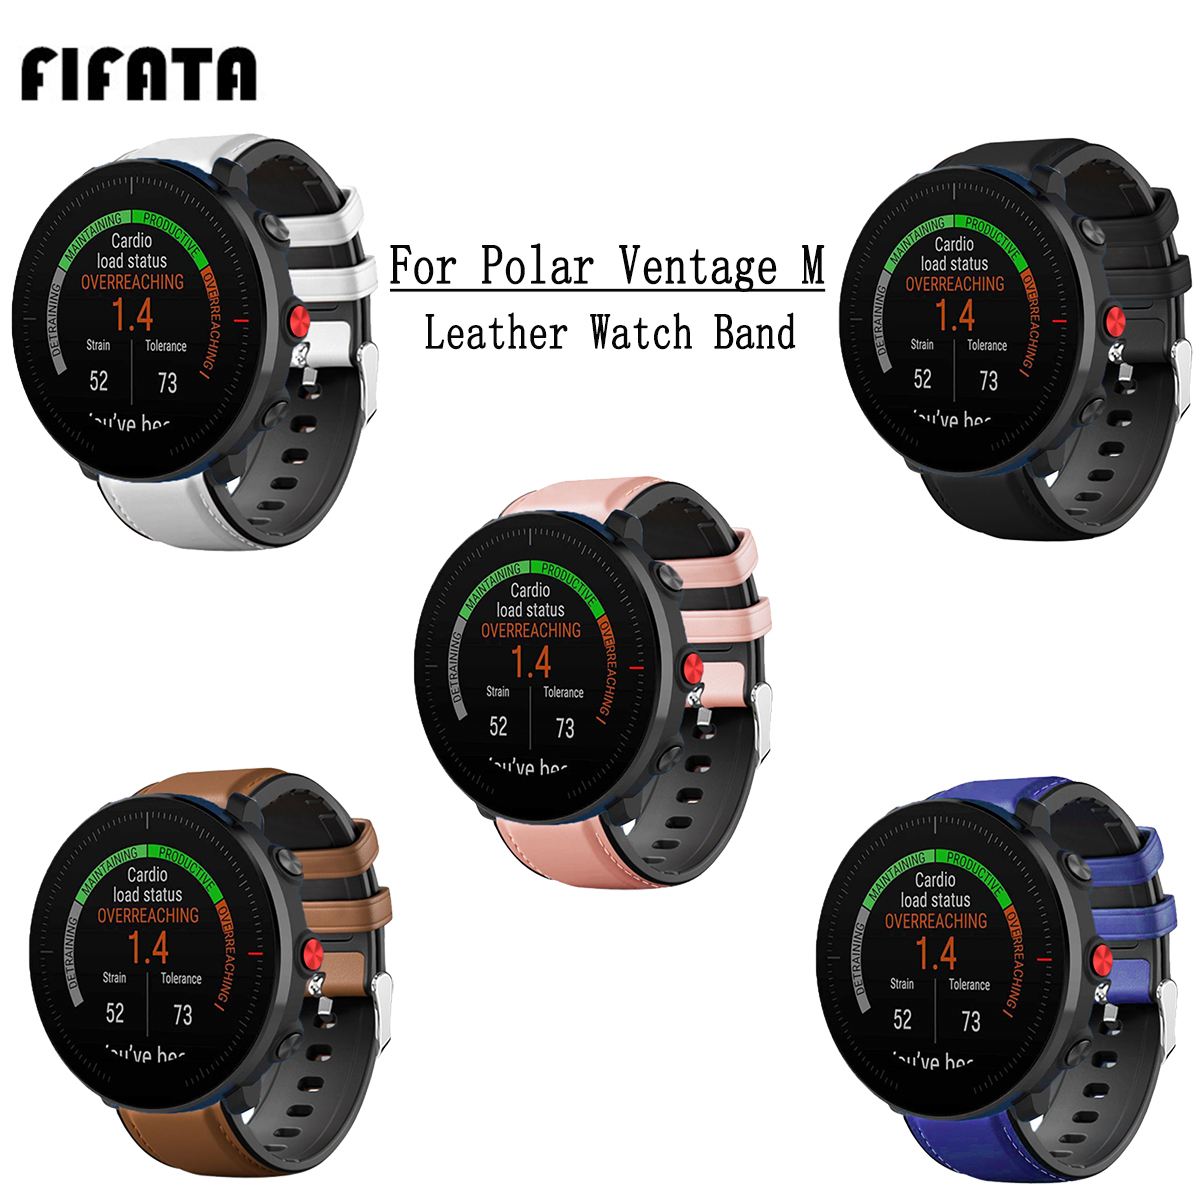 FIFATA 22MM Leather + Silicone Double Layer Watch Strap For Polar Vantage M Sport Watch Wristband For Huami Amazfit GTR Watch